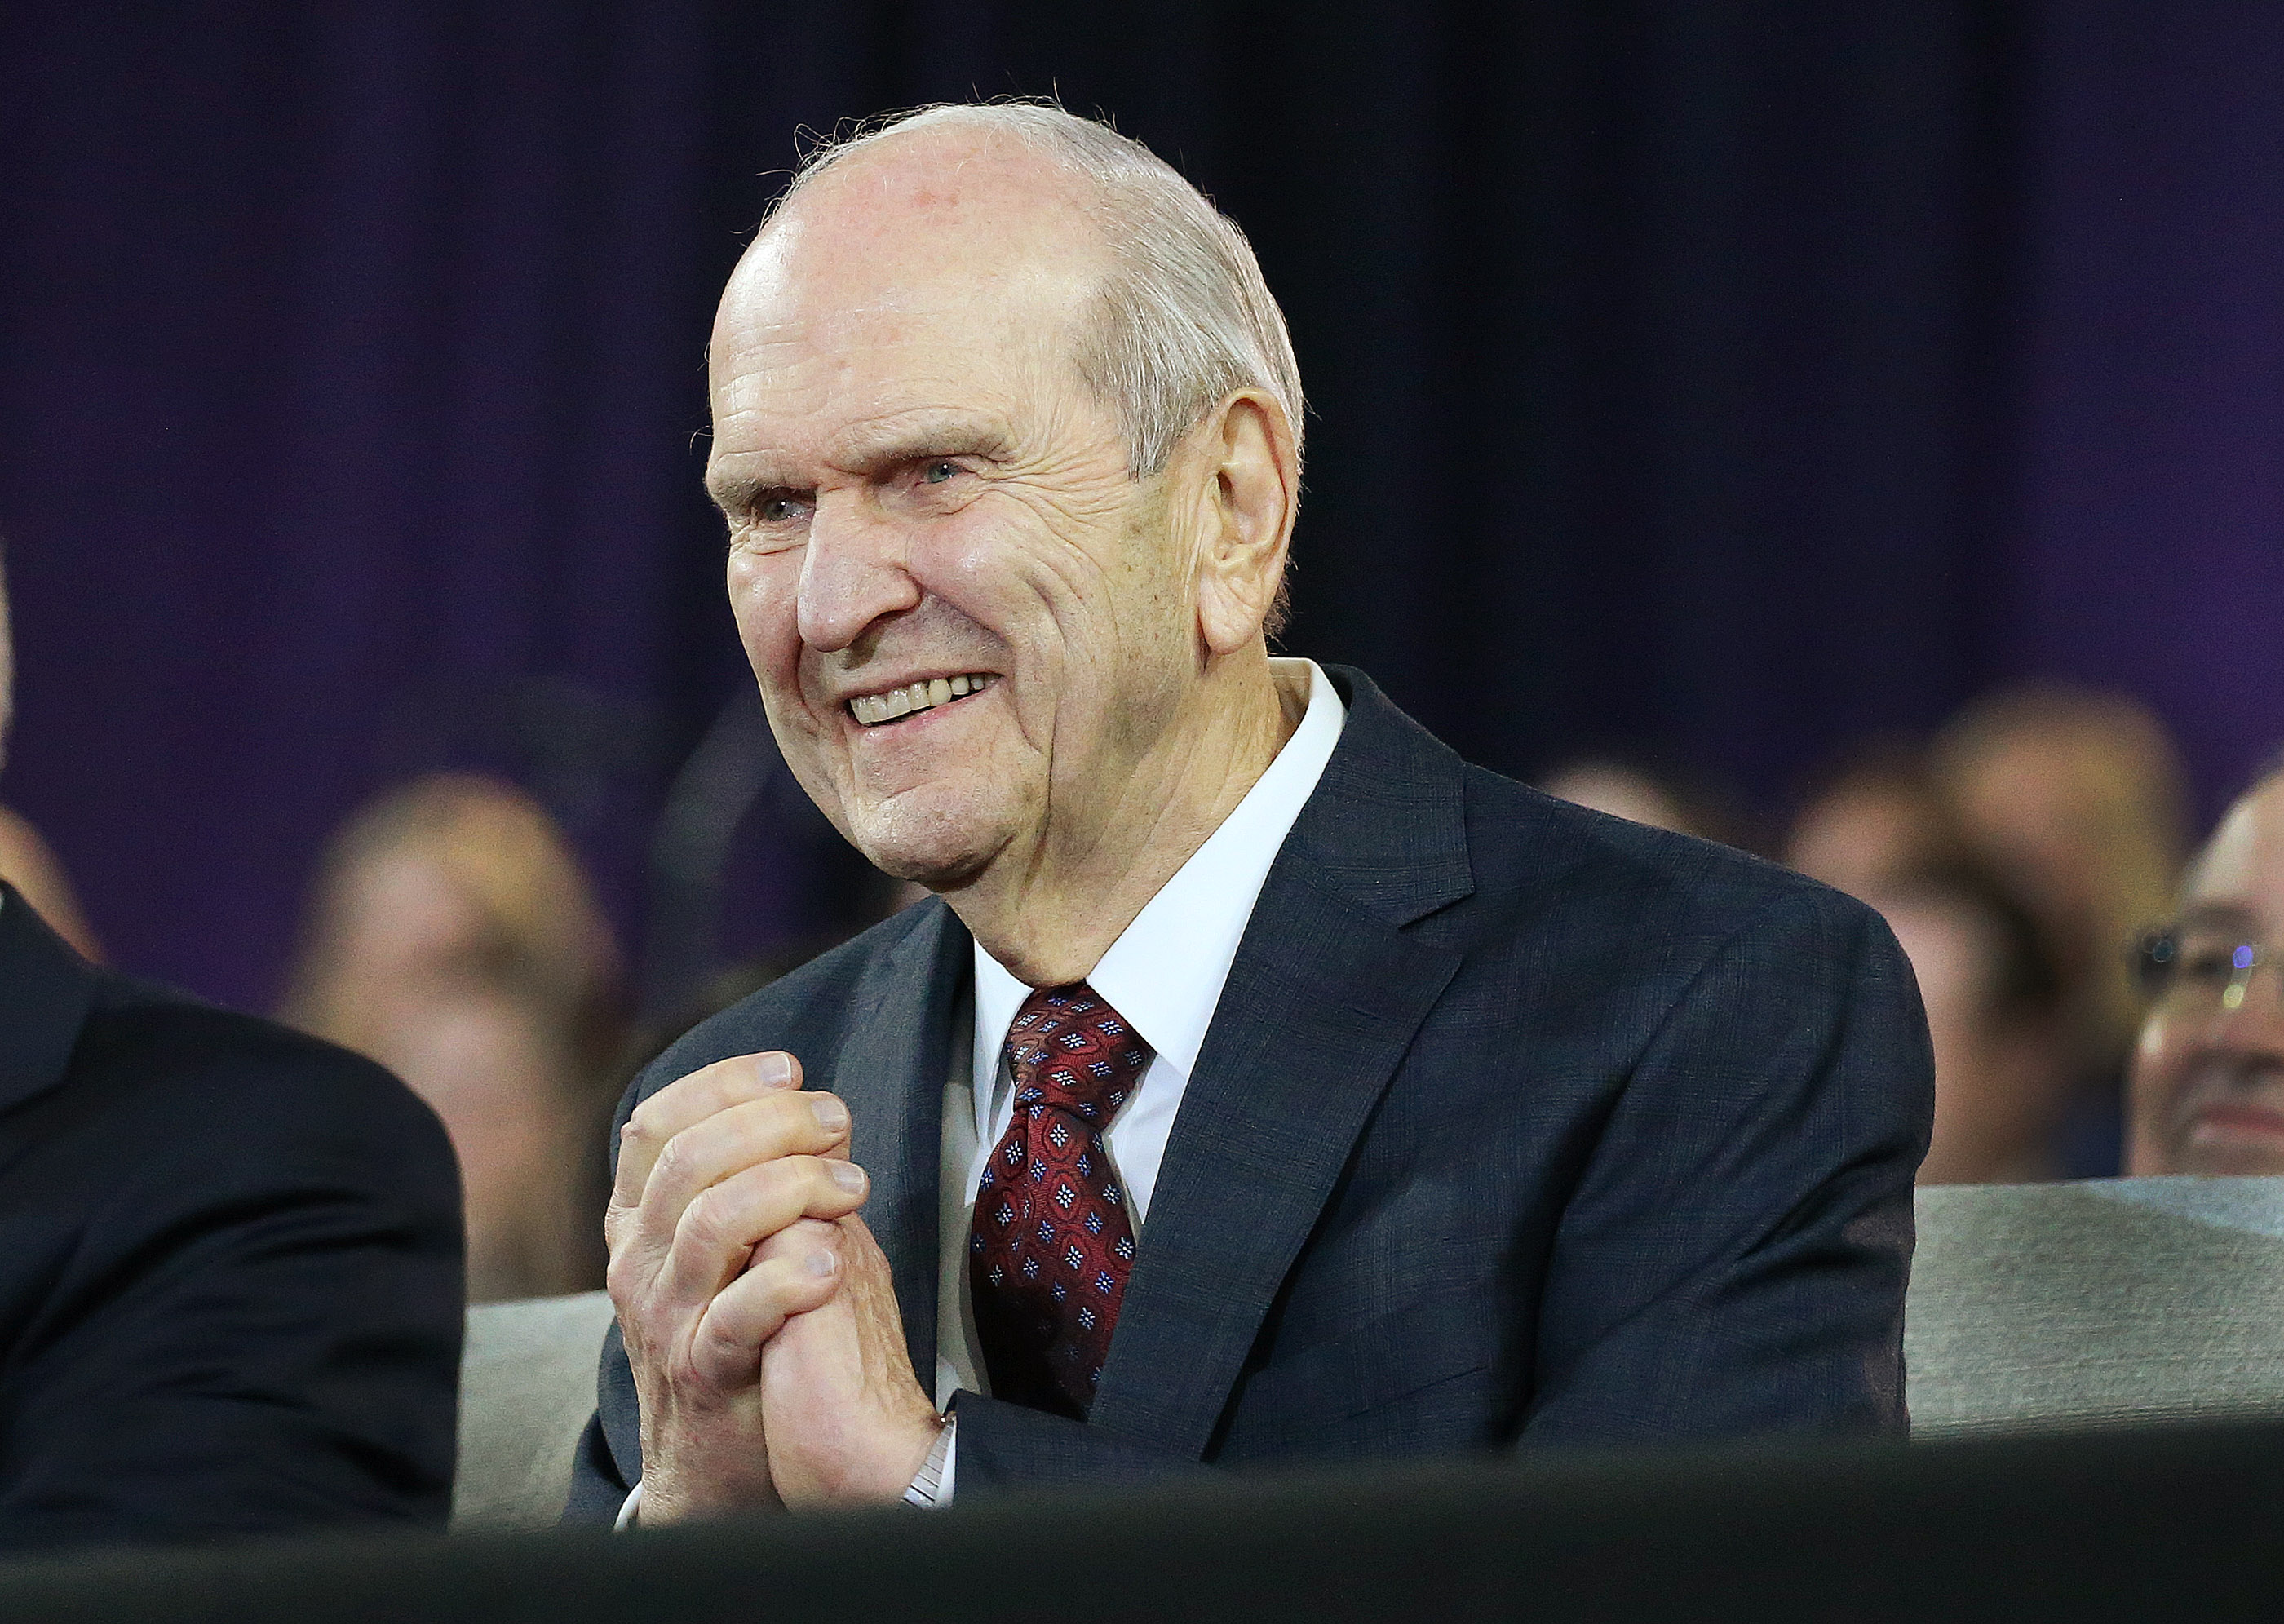 President Russell M. Nelson of The Church of Jesus Christ of Latter-day Saints gestures to attendees at the State Farm Stadium in Phoenix on Sunday, Feb. 10, 2019.